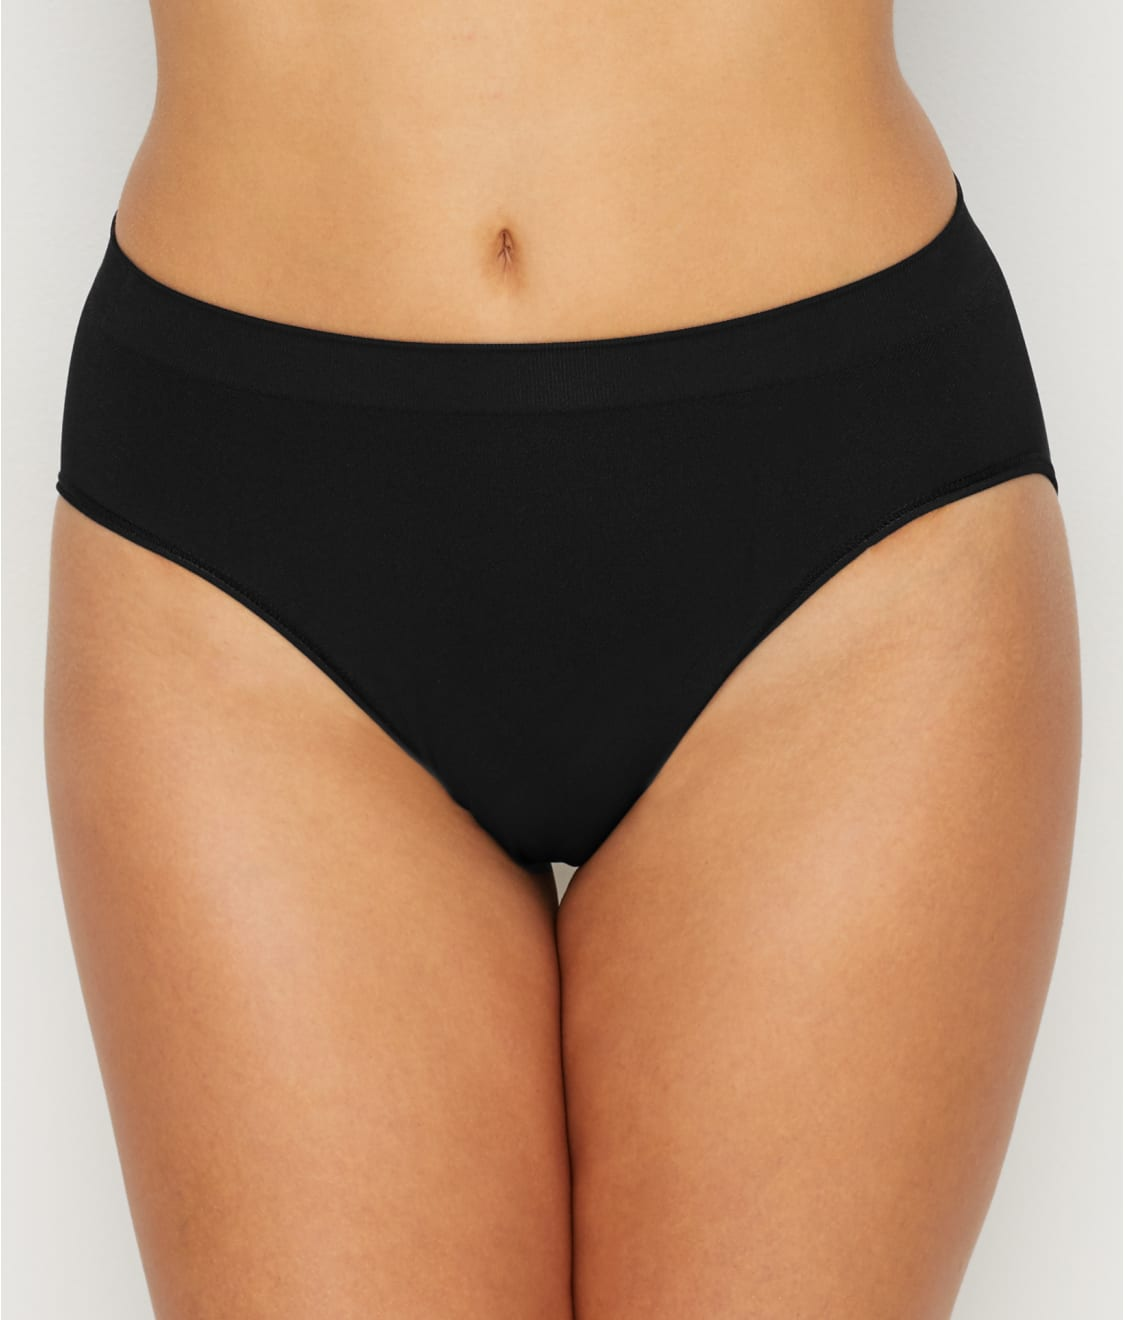 tummy control panties & shaping panties | bare necessities